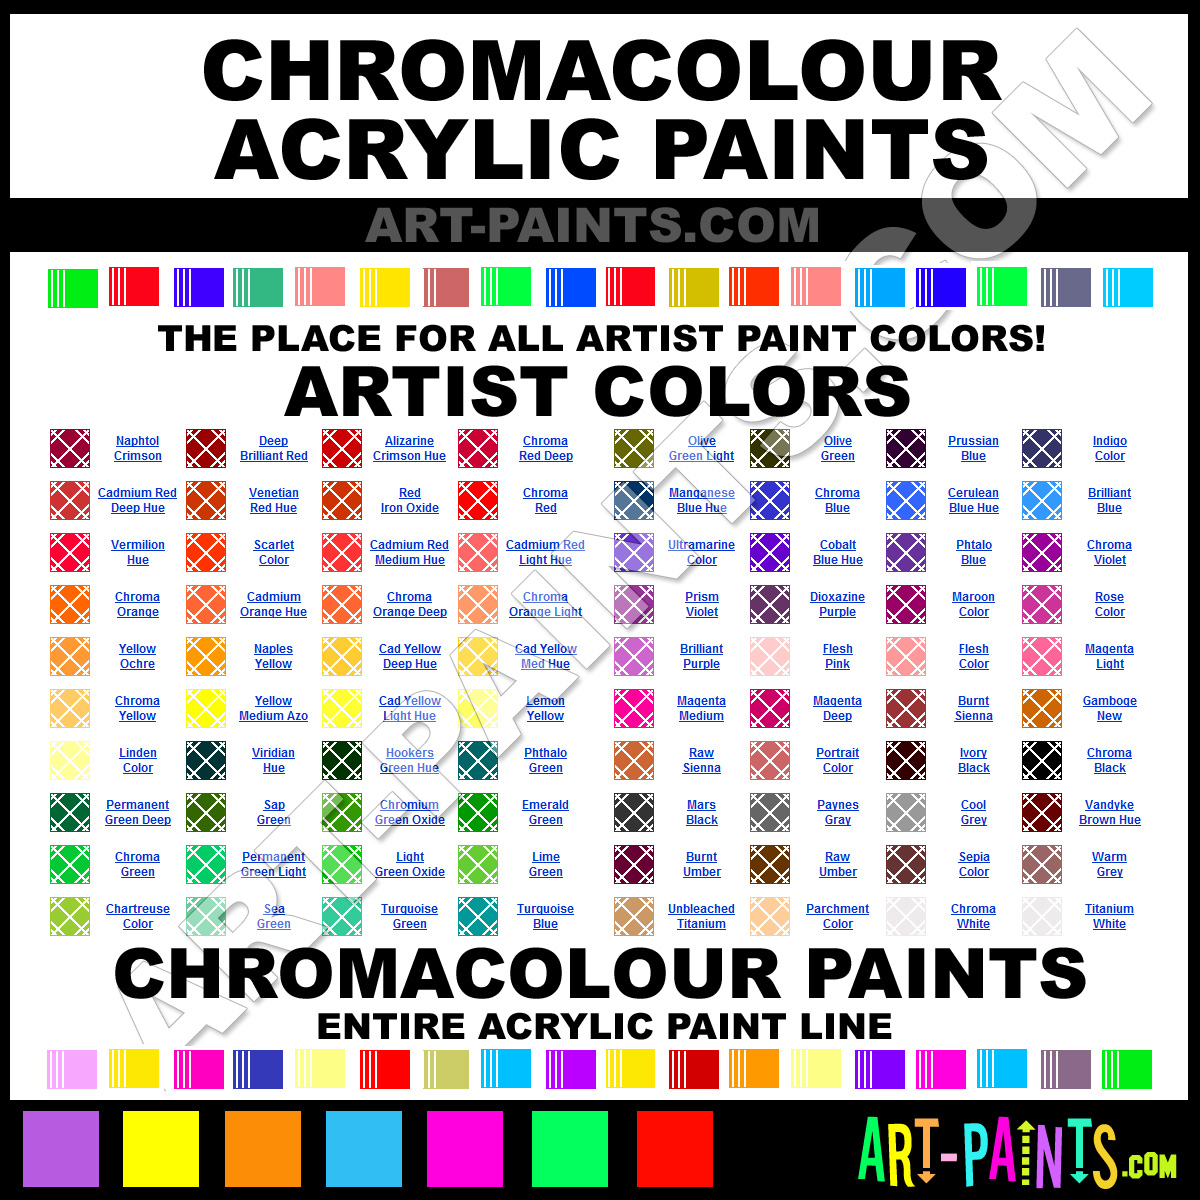 Artist Paint Colors Chromacolour Artist Paints